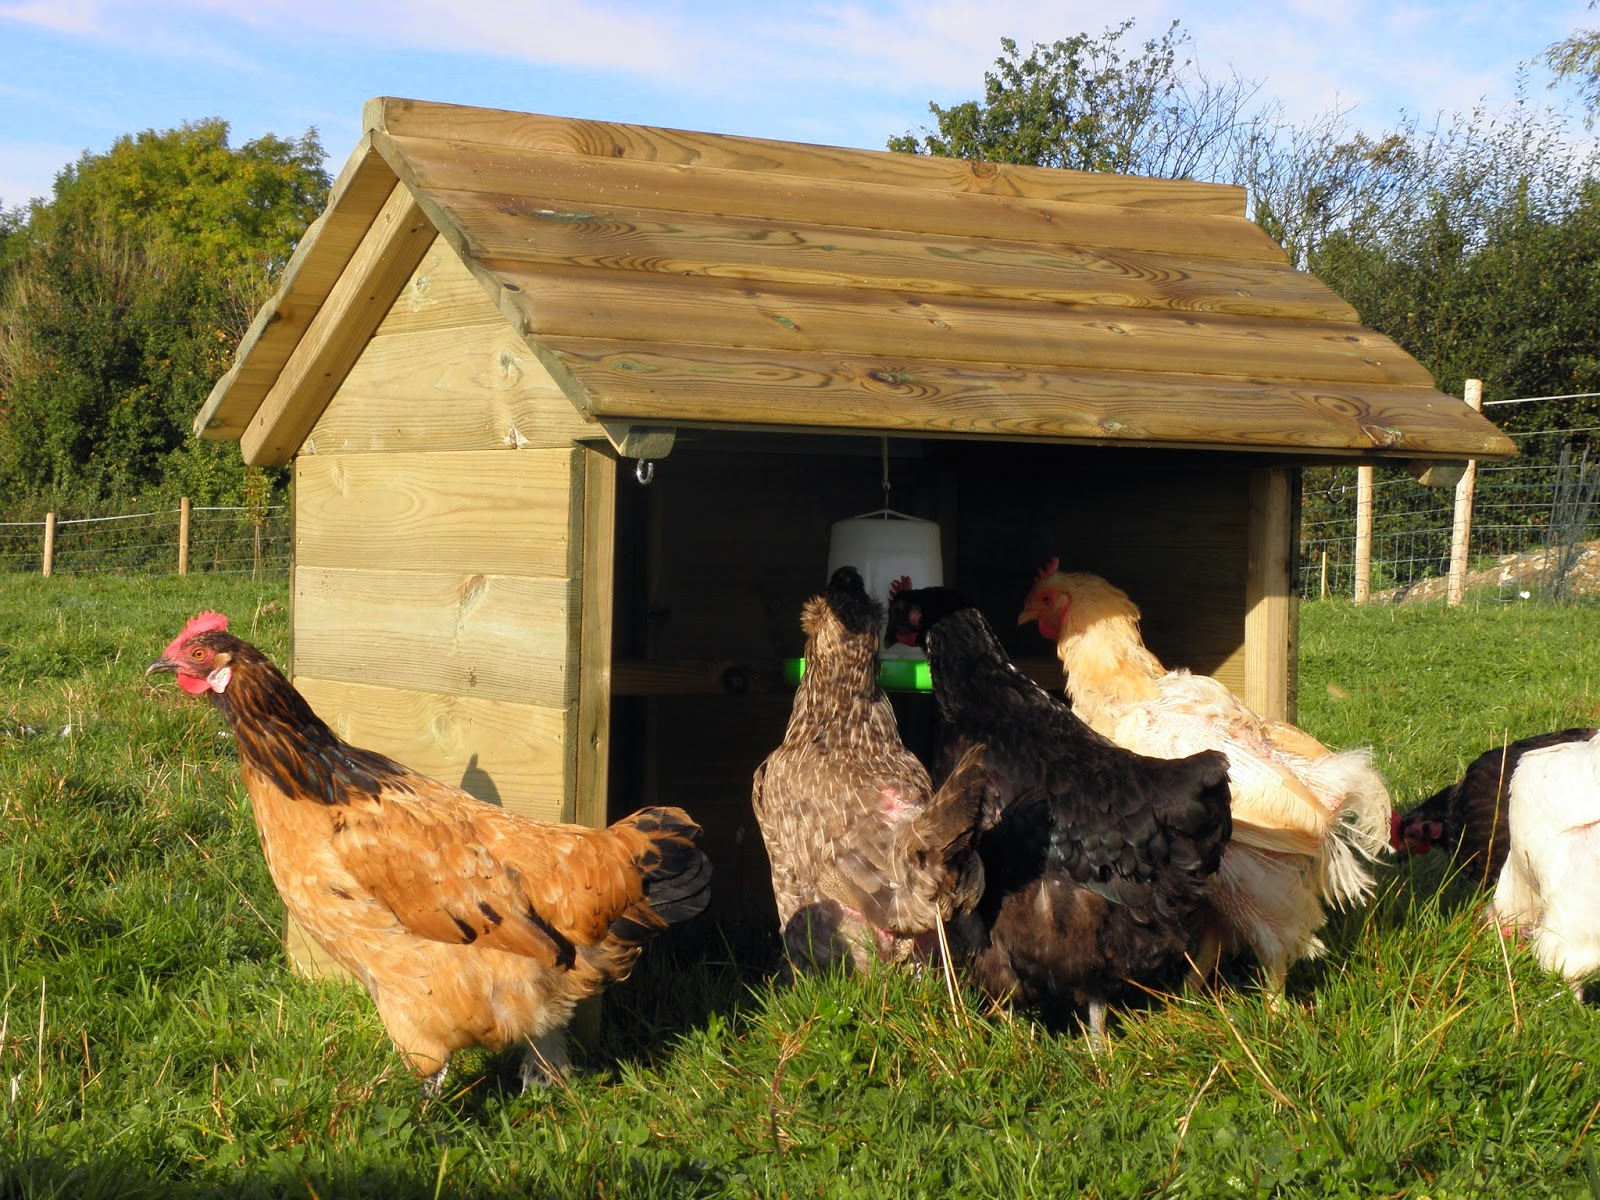 Providing shade for hens in hot weather